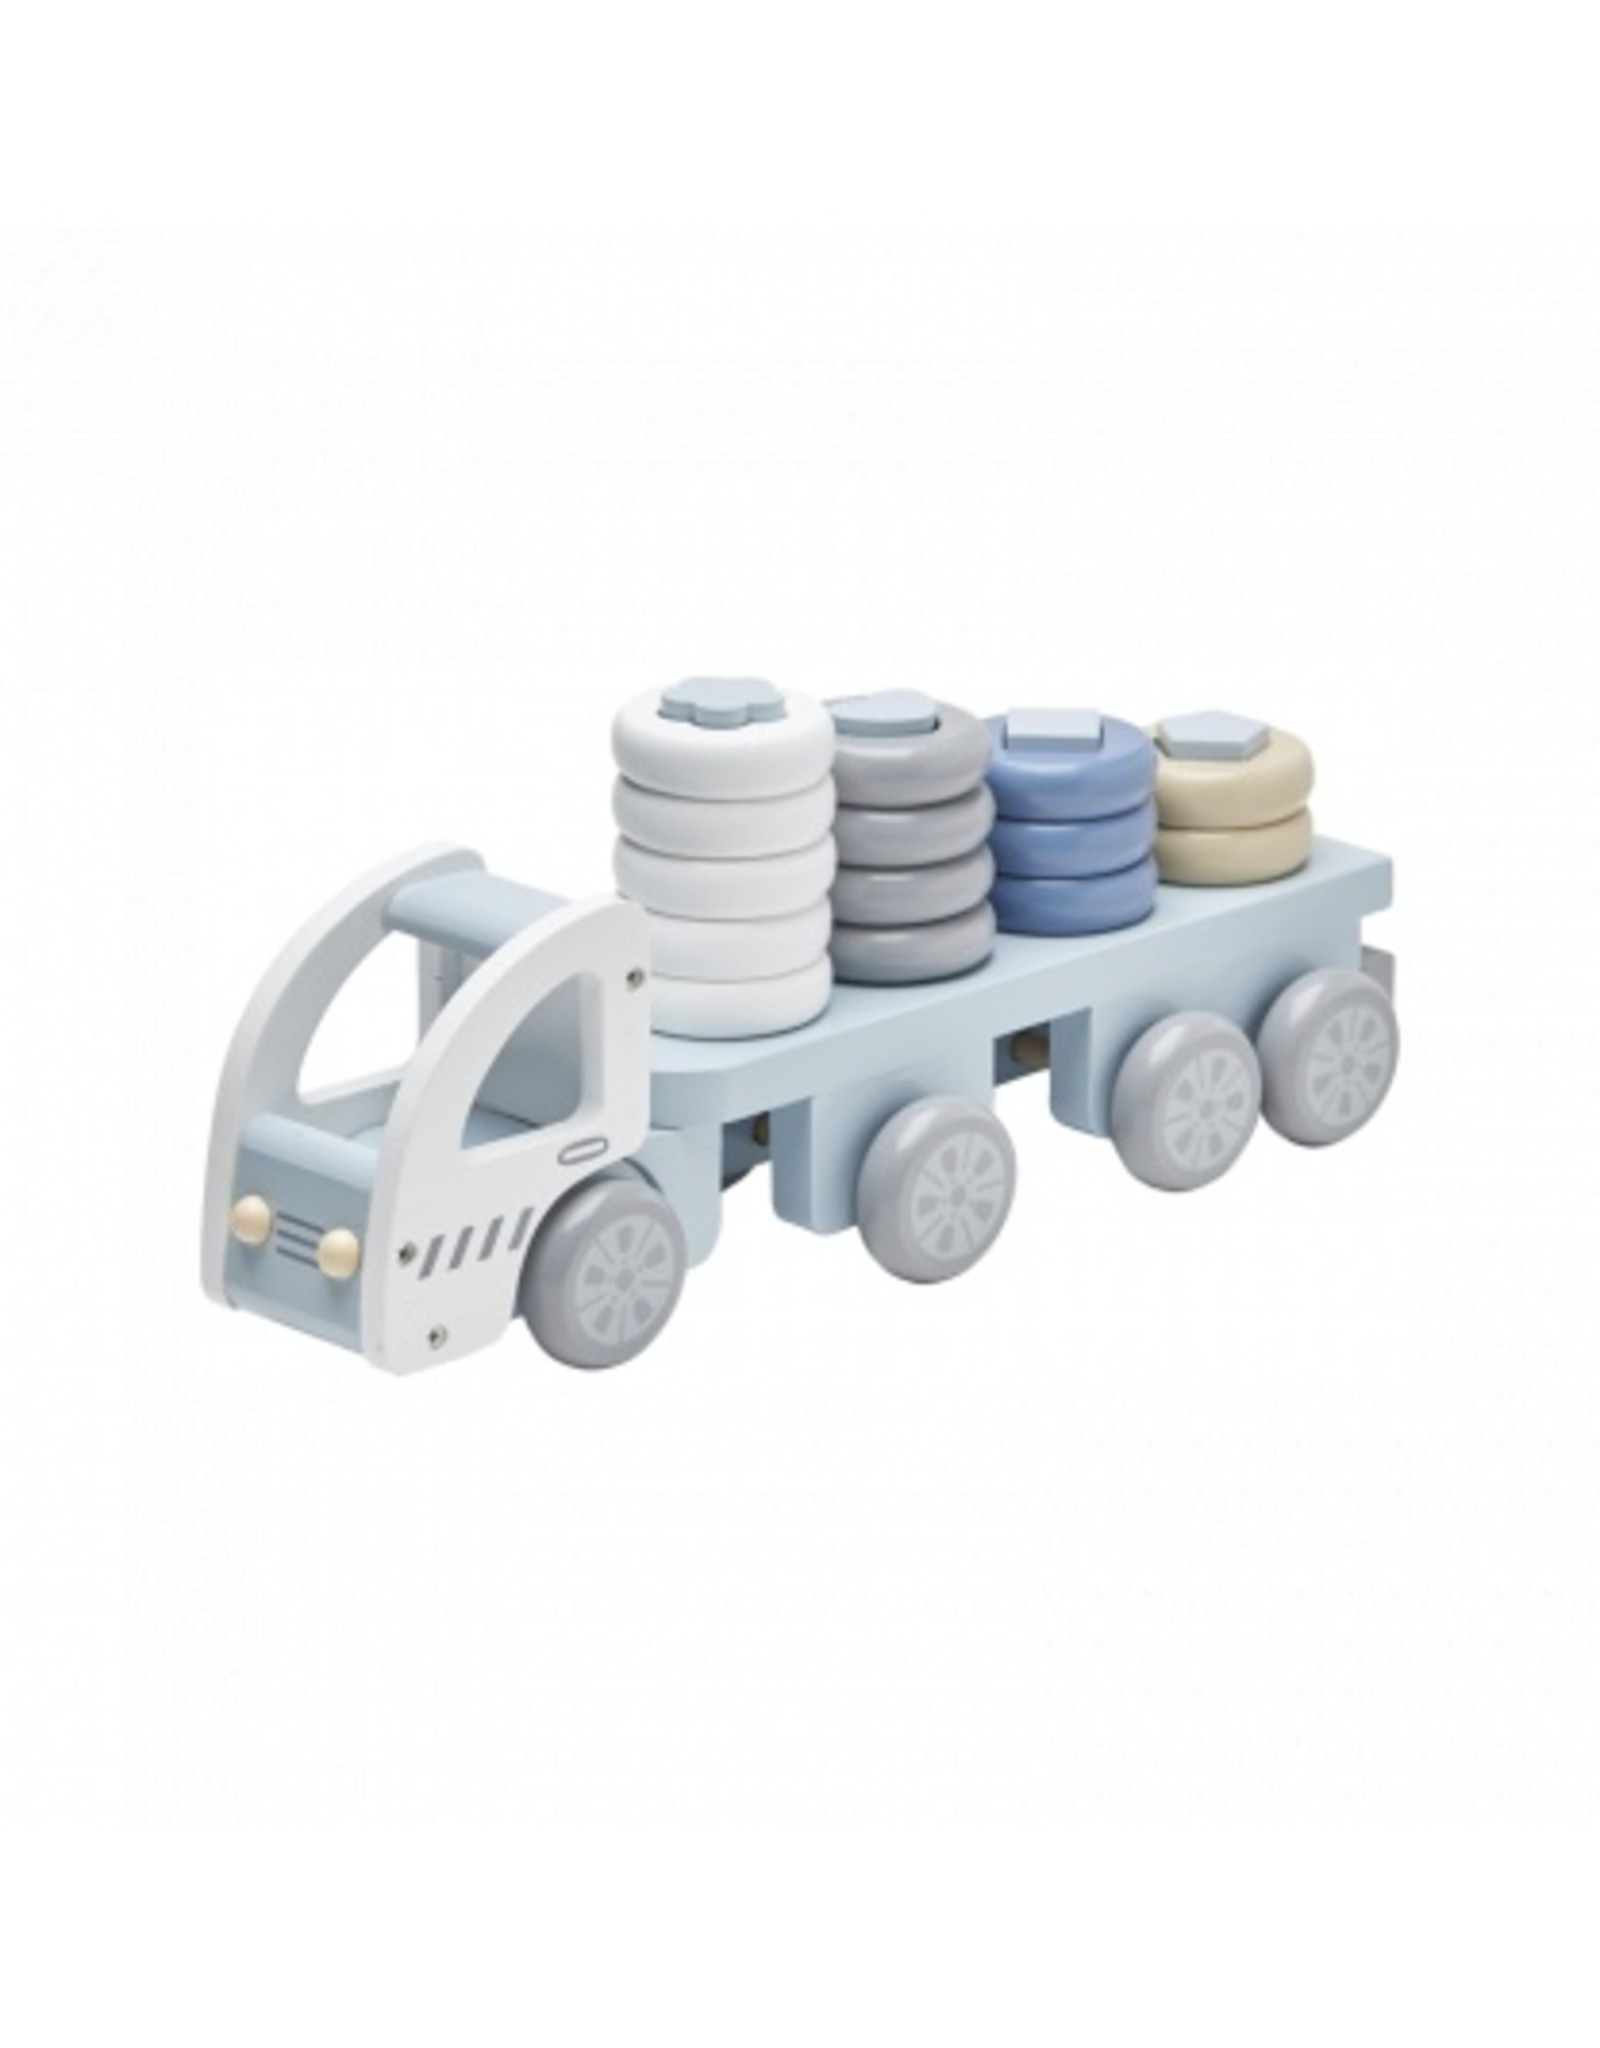 KIDS CONCEPT Blue Stacking Ring Truck